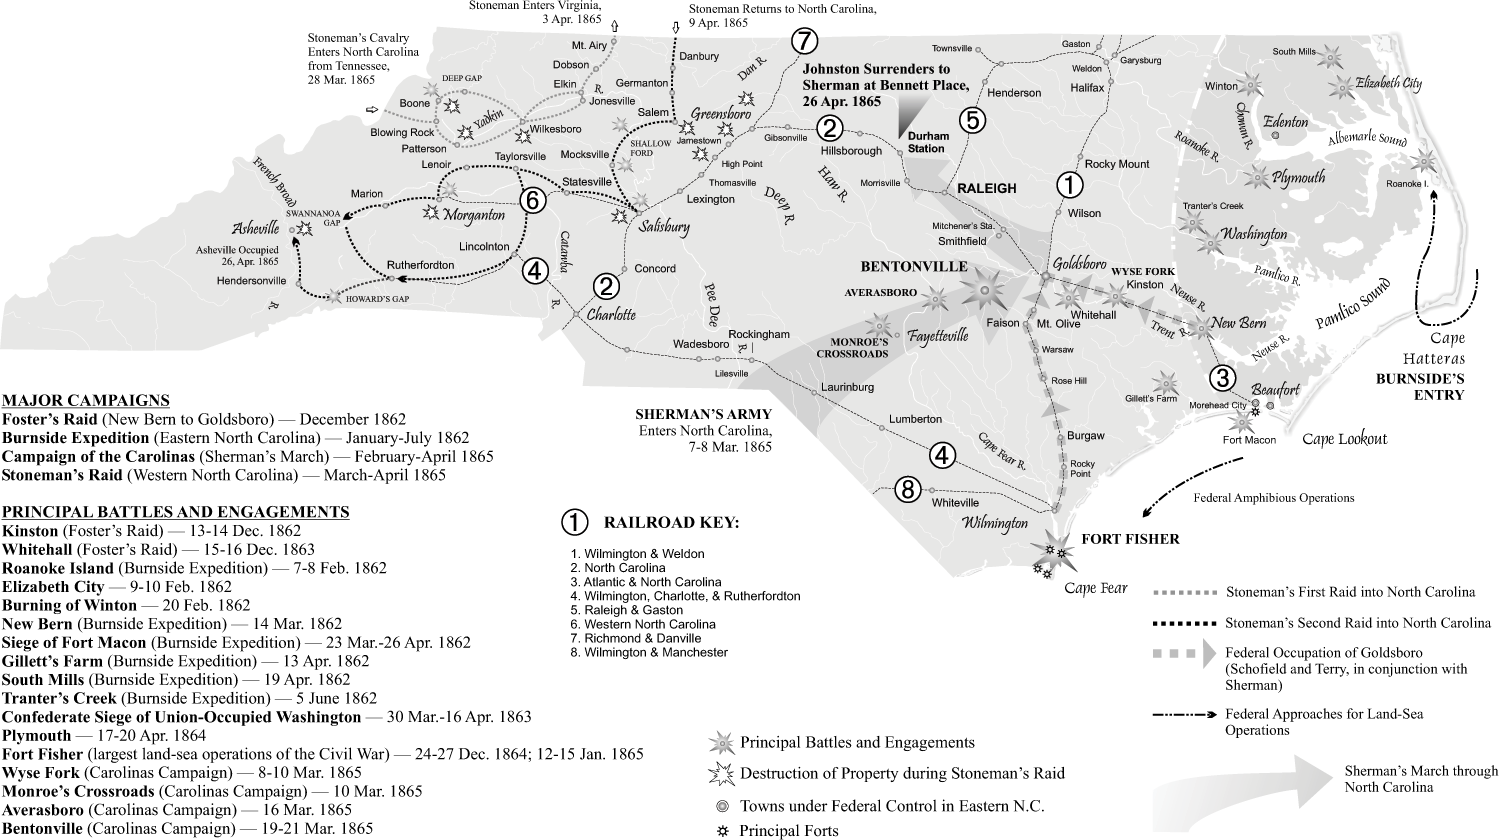 Civil War campaigns and battles. Map by Mark Anderson Moore, courtesy North Carolina Office of Archives and History, Raleigh.